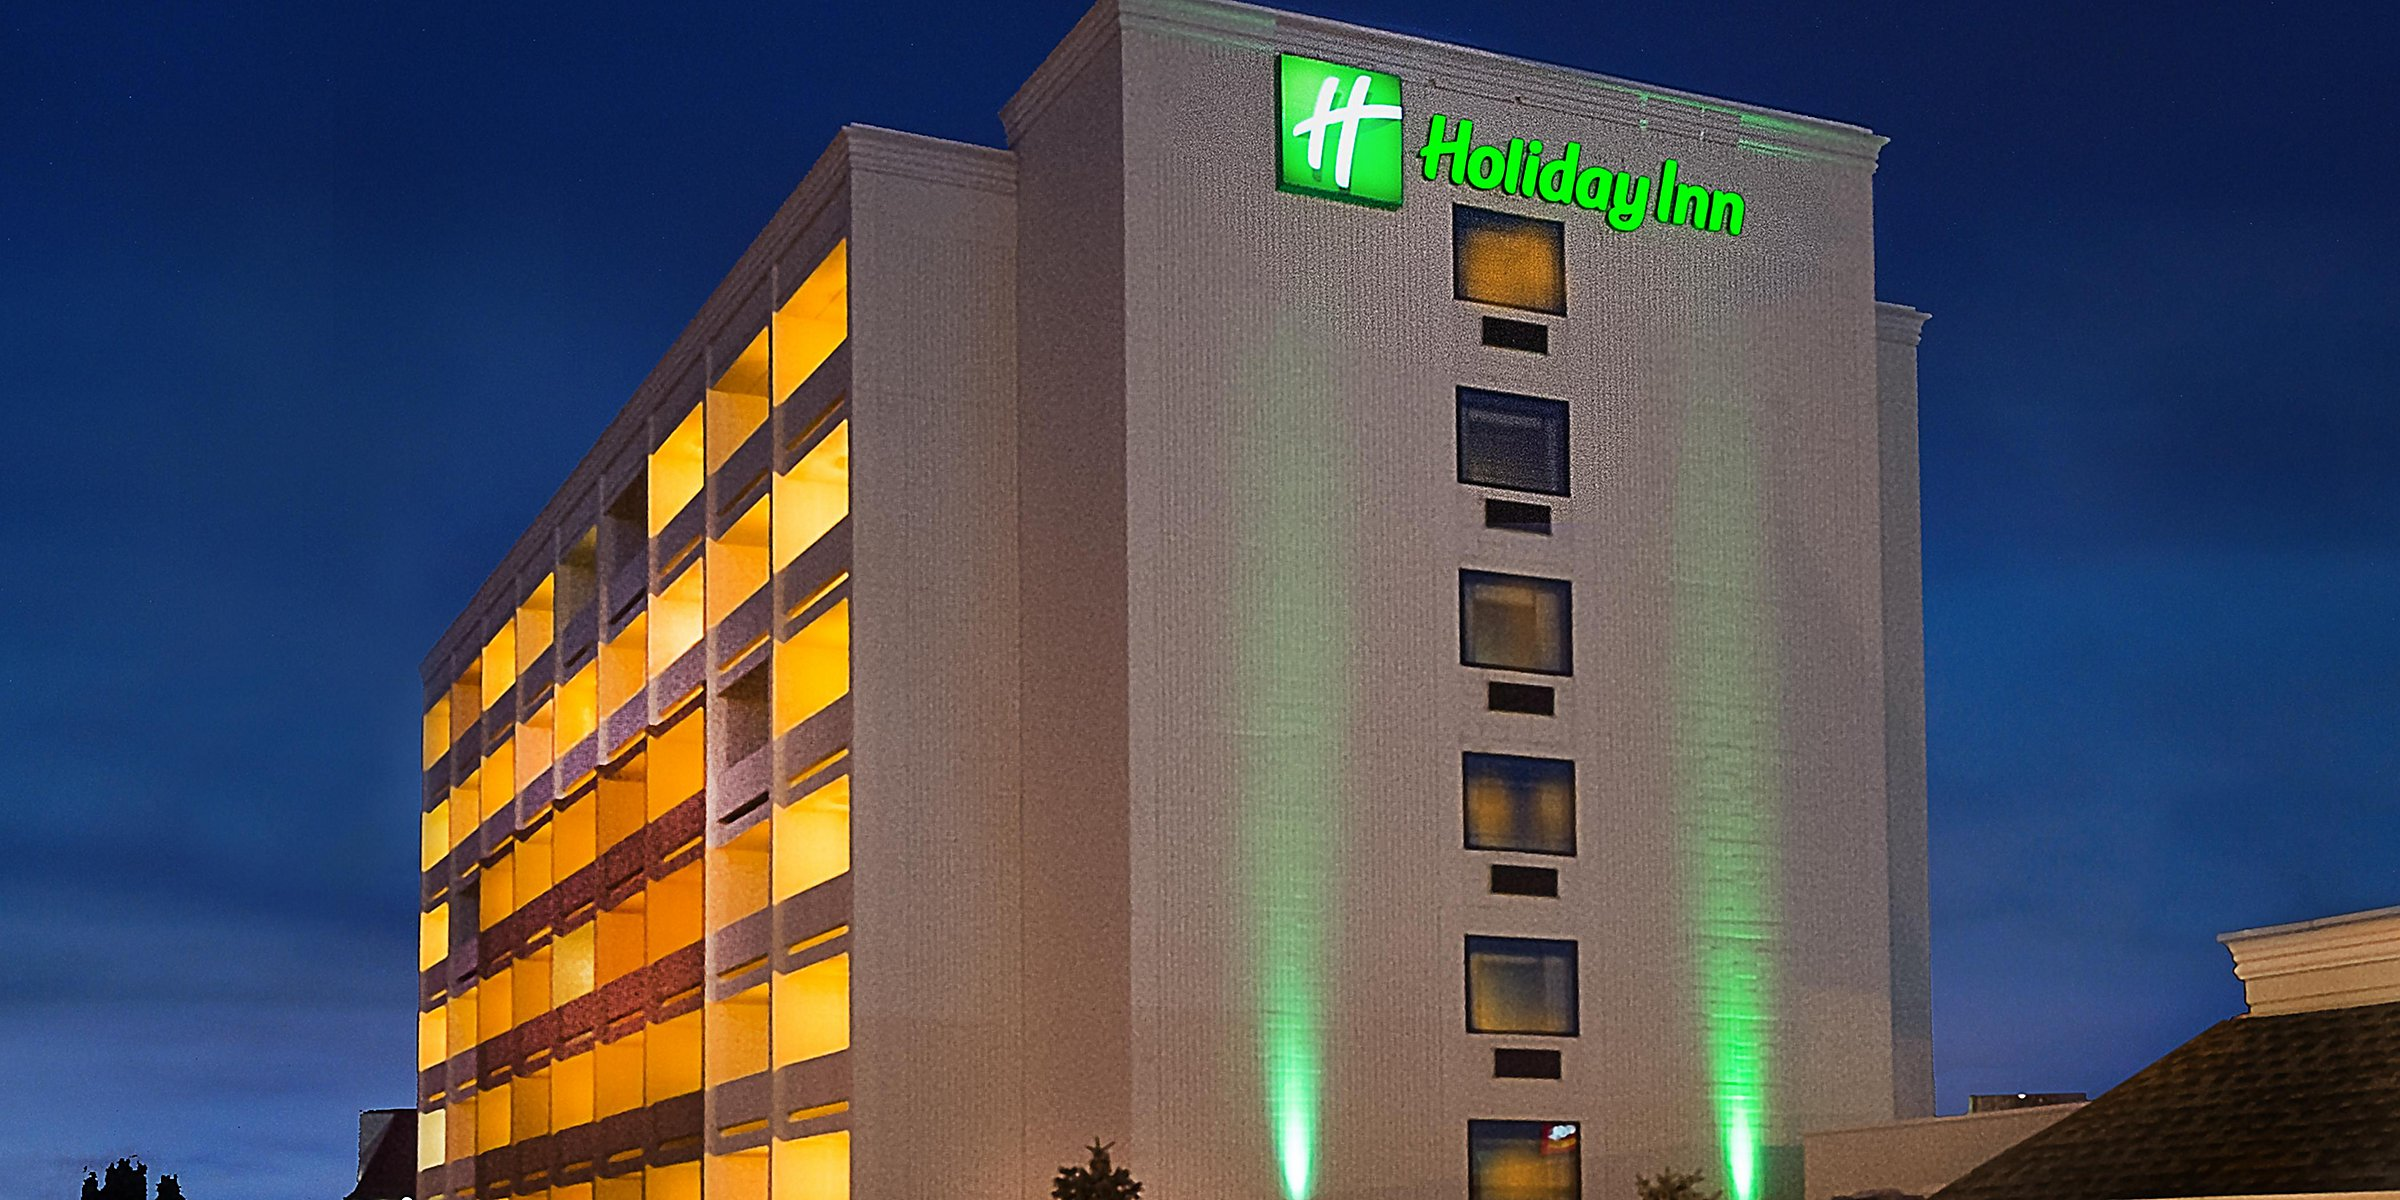 Hotels near St. Louis Zoo And Forest Park | Holiday Inn St ... on st. louis restaurants downtown, st. louis city map, st. louis county map, orange county convention center map, st. louis zip code map printable, st. louis casinos map, st. louis airport map, st. louis lodging map, dome st. louis hotels map, st. louis forest park map, st louis attractions map, st. louis hotels near convention center map, st. louis downtown attractions, st. louis metro map, st. louis hosptial locations on map, st. louis nightlife downtown, st. louis highway map, columbia hotels map, st. louis skyline downtown, st. louis to atlanta map,